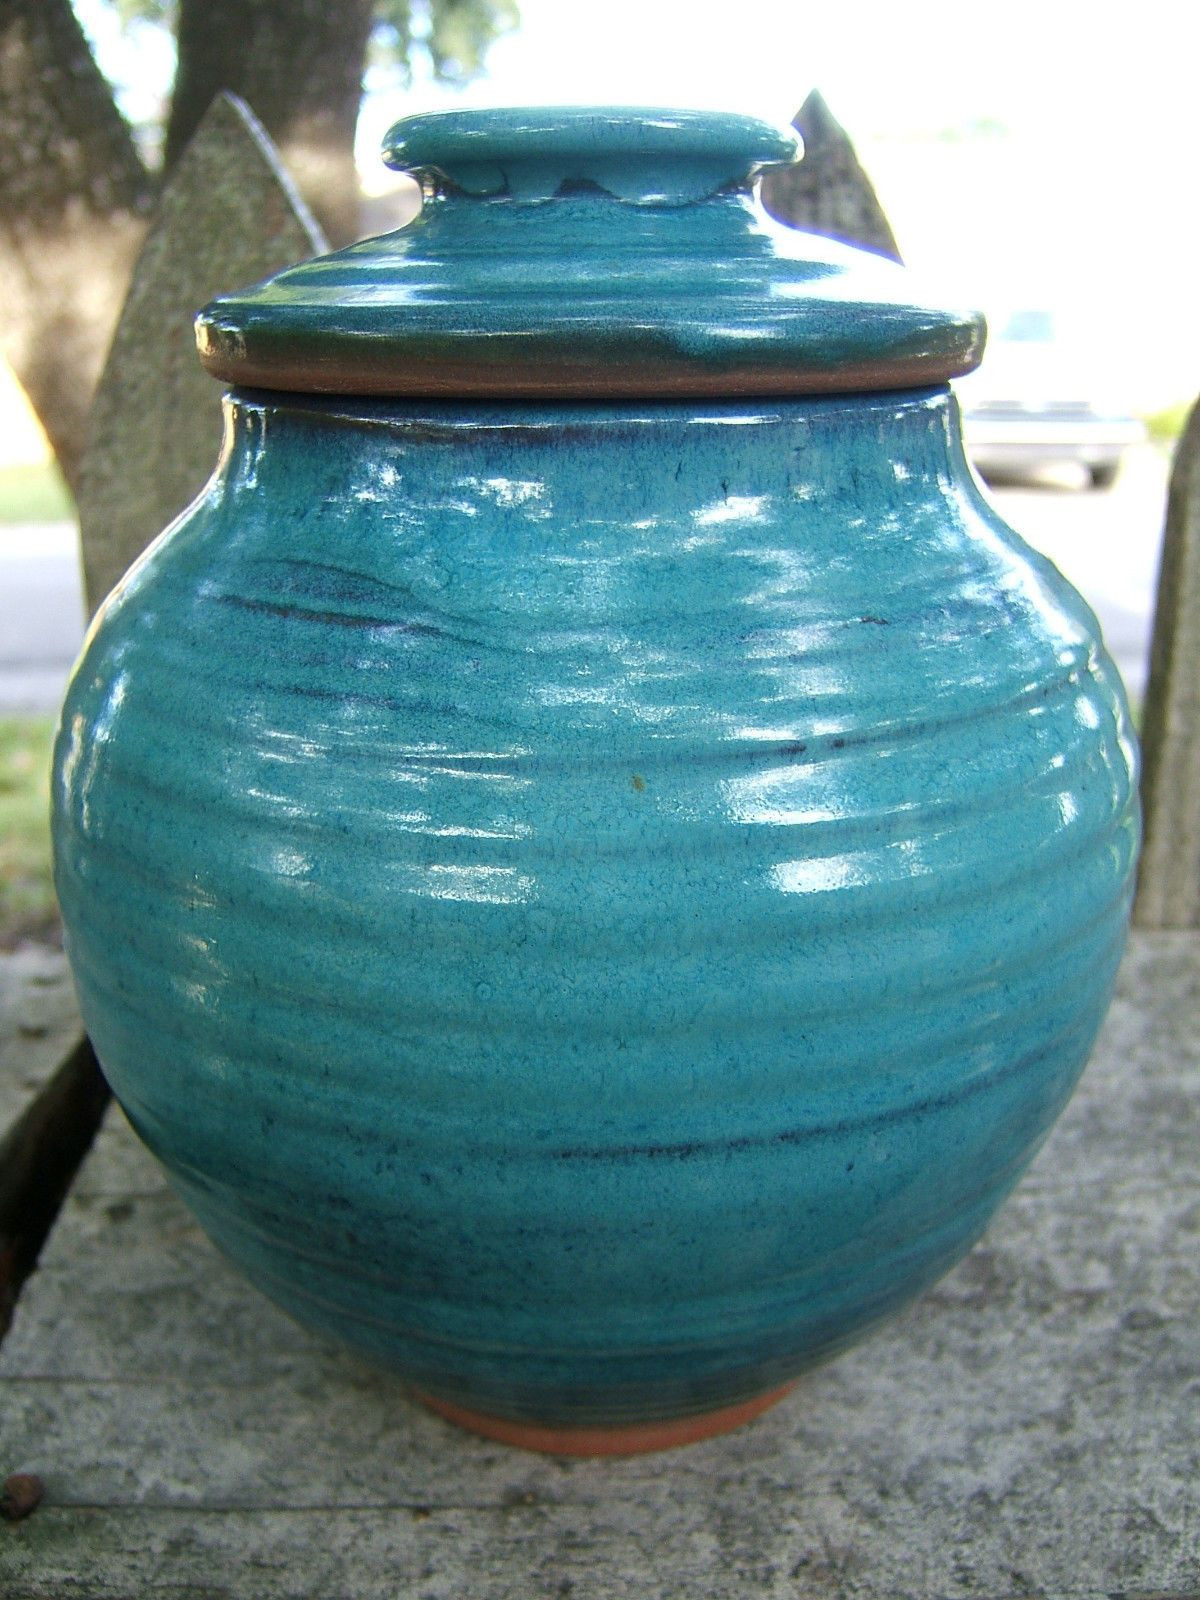 Tall Turquoise Vase Of Harding Black Texas Studio Art Pottery 1979 Signed Turquoise 8 Tall In Harding Black Texas Studio Art Pottery 1979 Signed Turquoise 8 Tall Ginger Jar Ebay